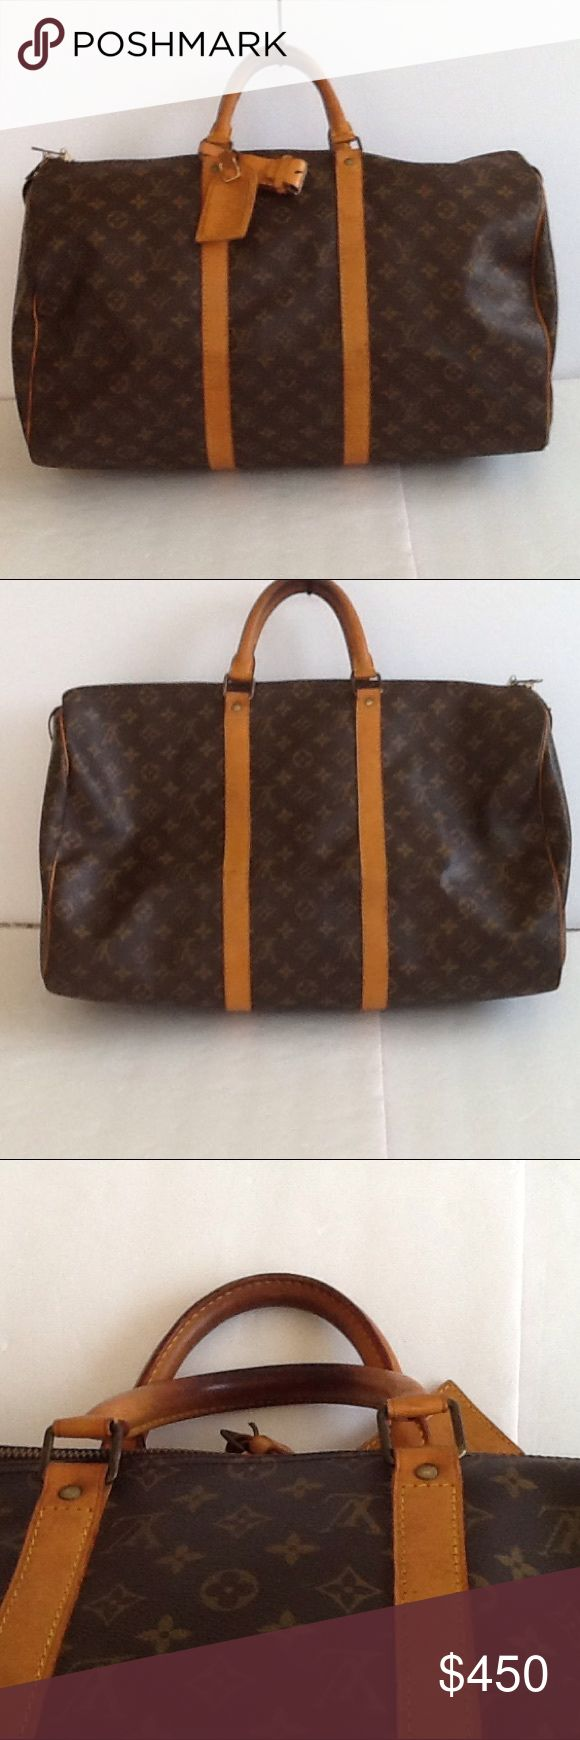 Authentic Louis Vuitton Keepall 45 Duffle Monogram The leather and straps showed signs of used. Canvas and inside linen are goo condition. The date code is VL 8901. The dimension is 20, 12 and 9 Louis Vuitton Bags Satchels